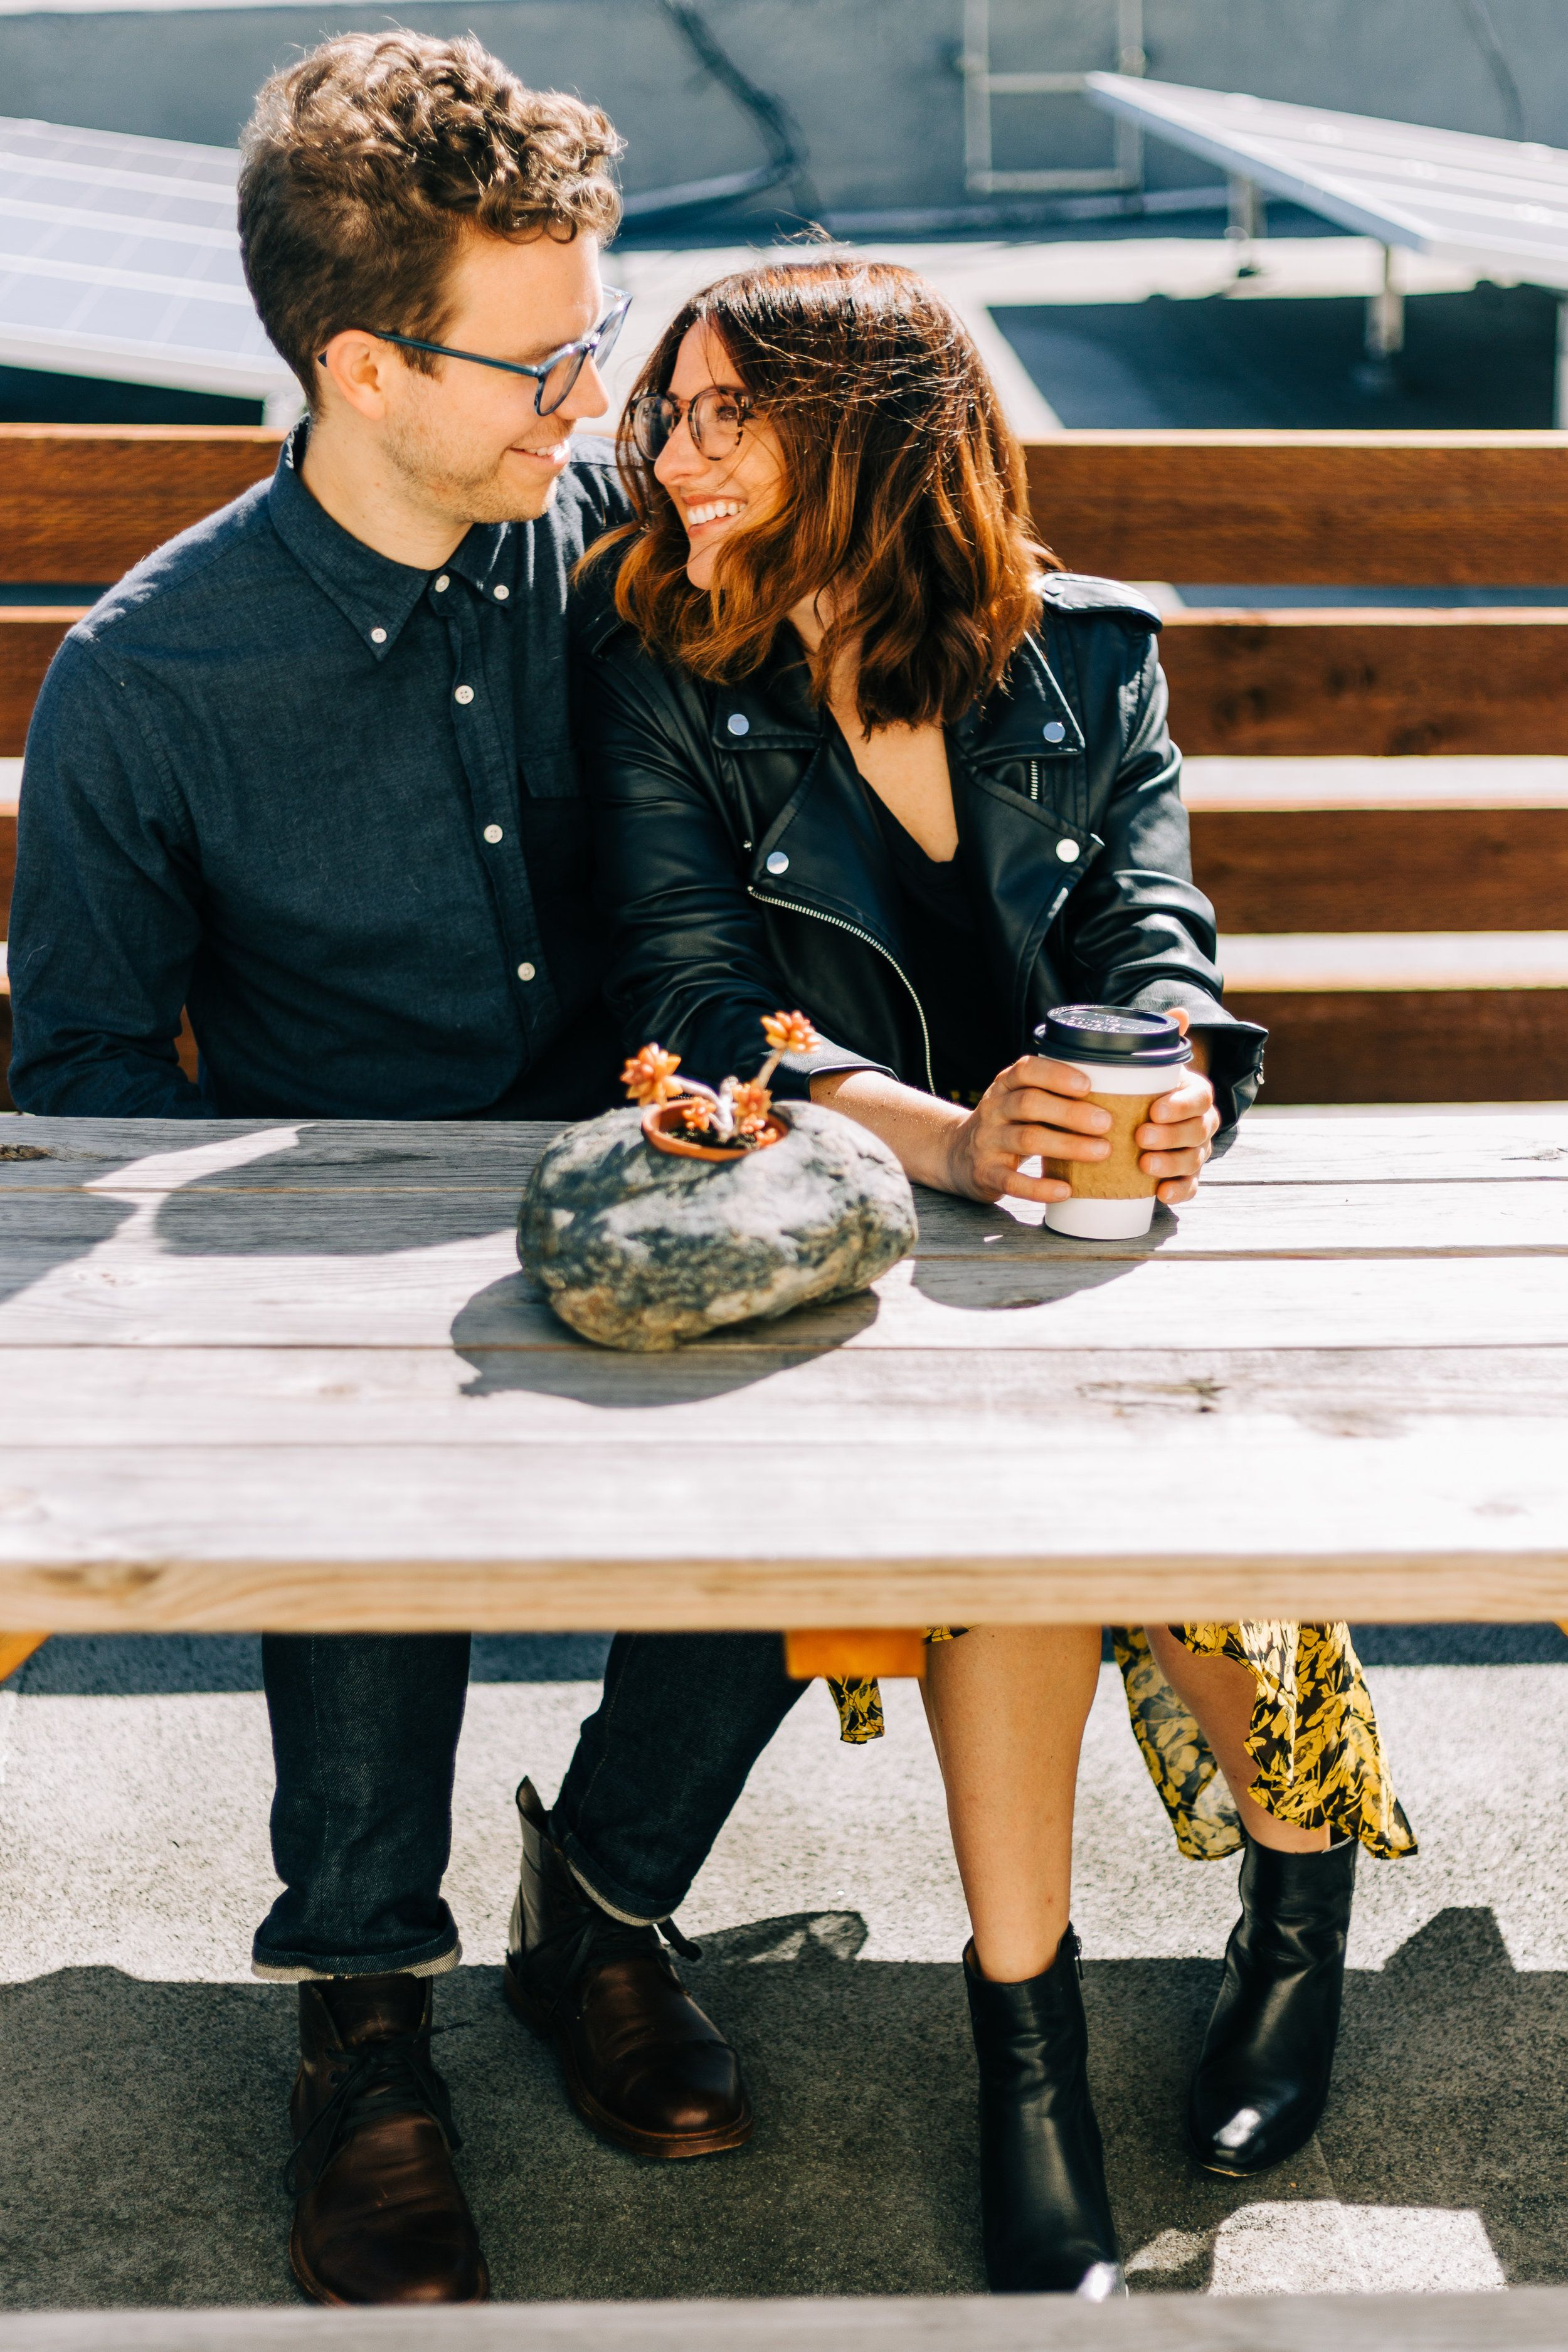 Walk The Walk (With images) | Hipster outfits, It movie ...